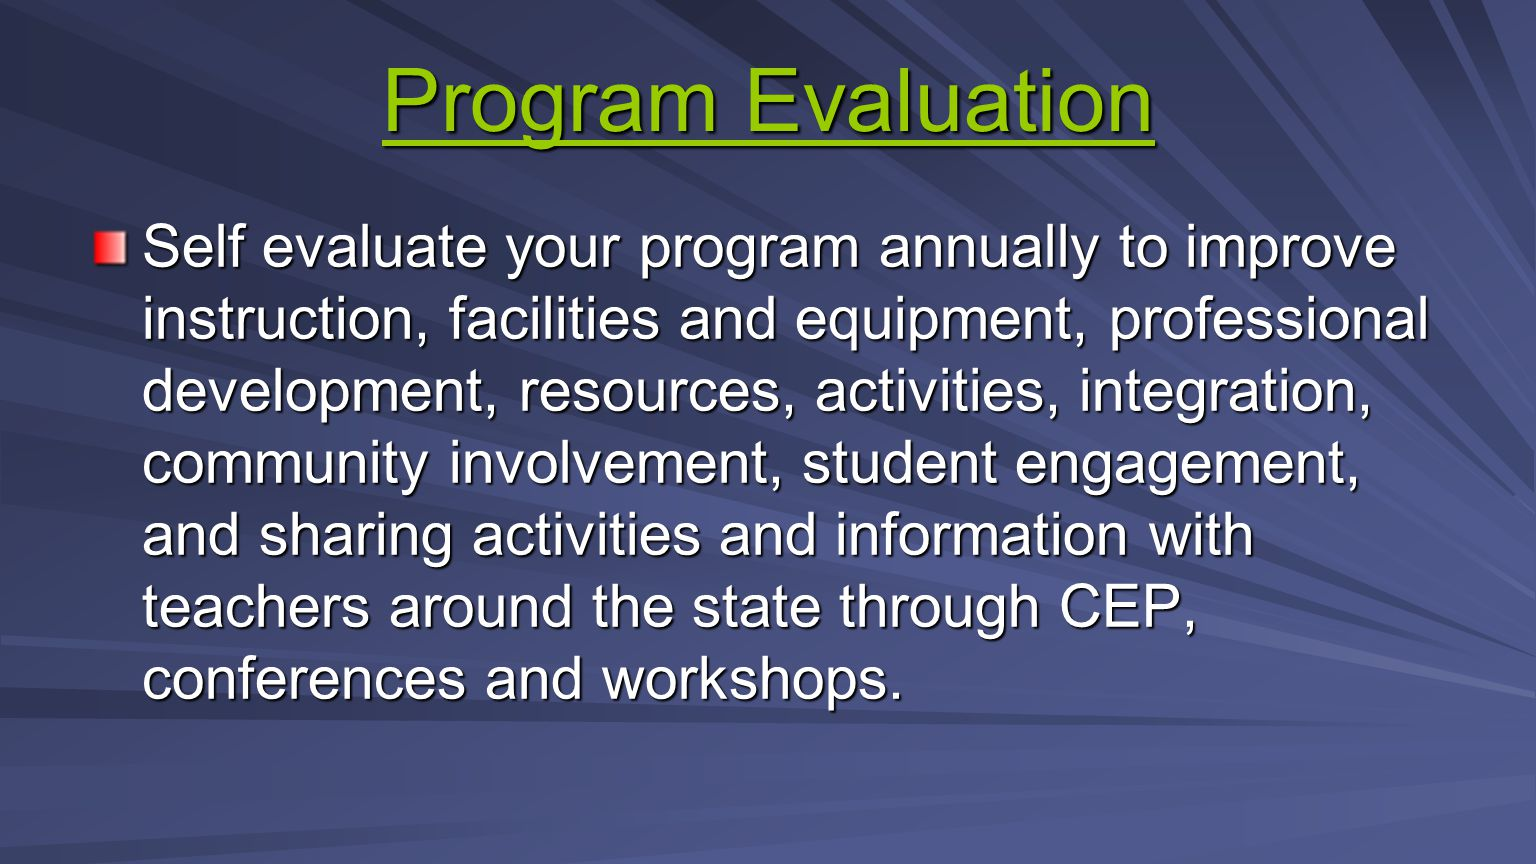 Program Evaluation Program Evaluation Self evaluate your program annually to improve instruction, facilities and equipment, professional development,